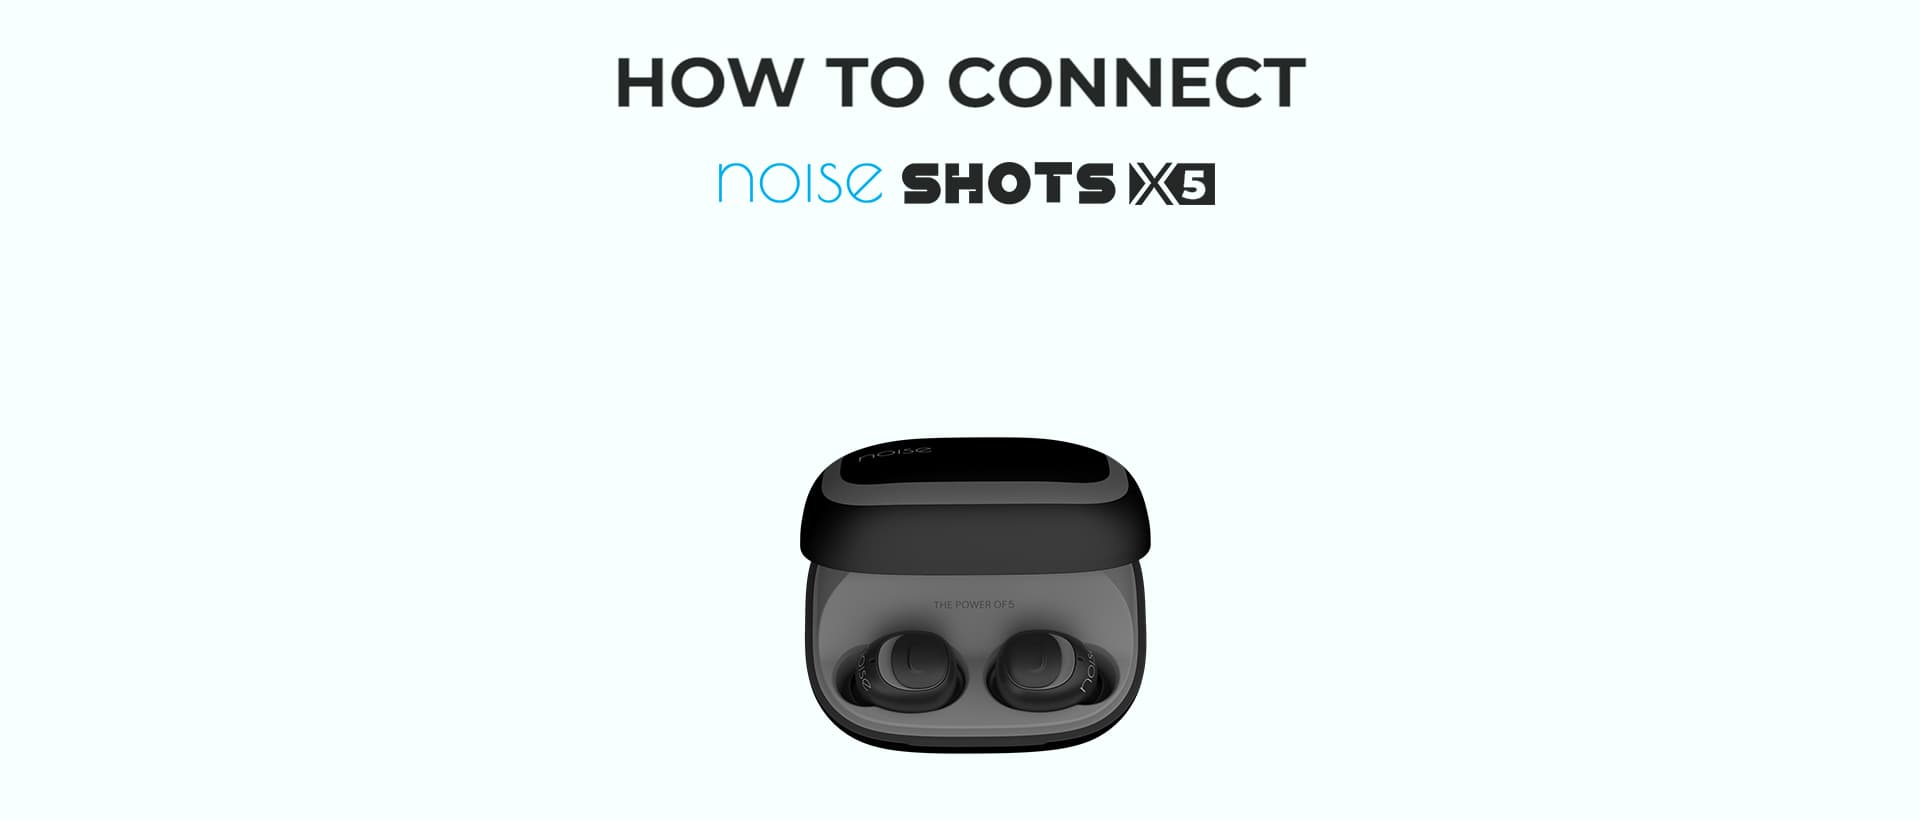 noise Shots X5 Truly Wireless Earbuds thumbnail for how to connect video desktop